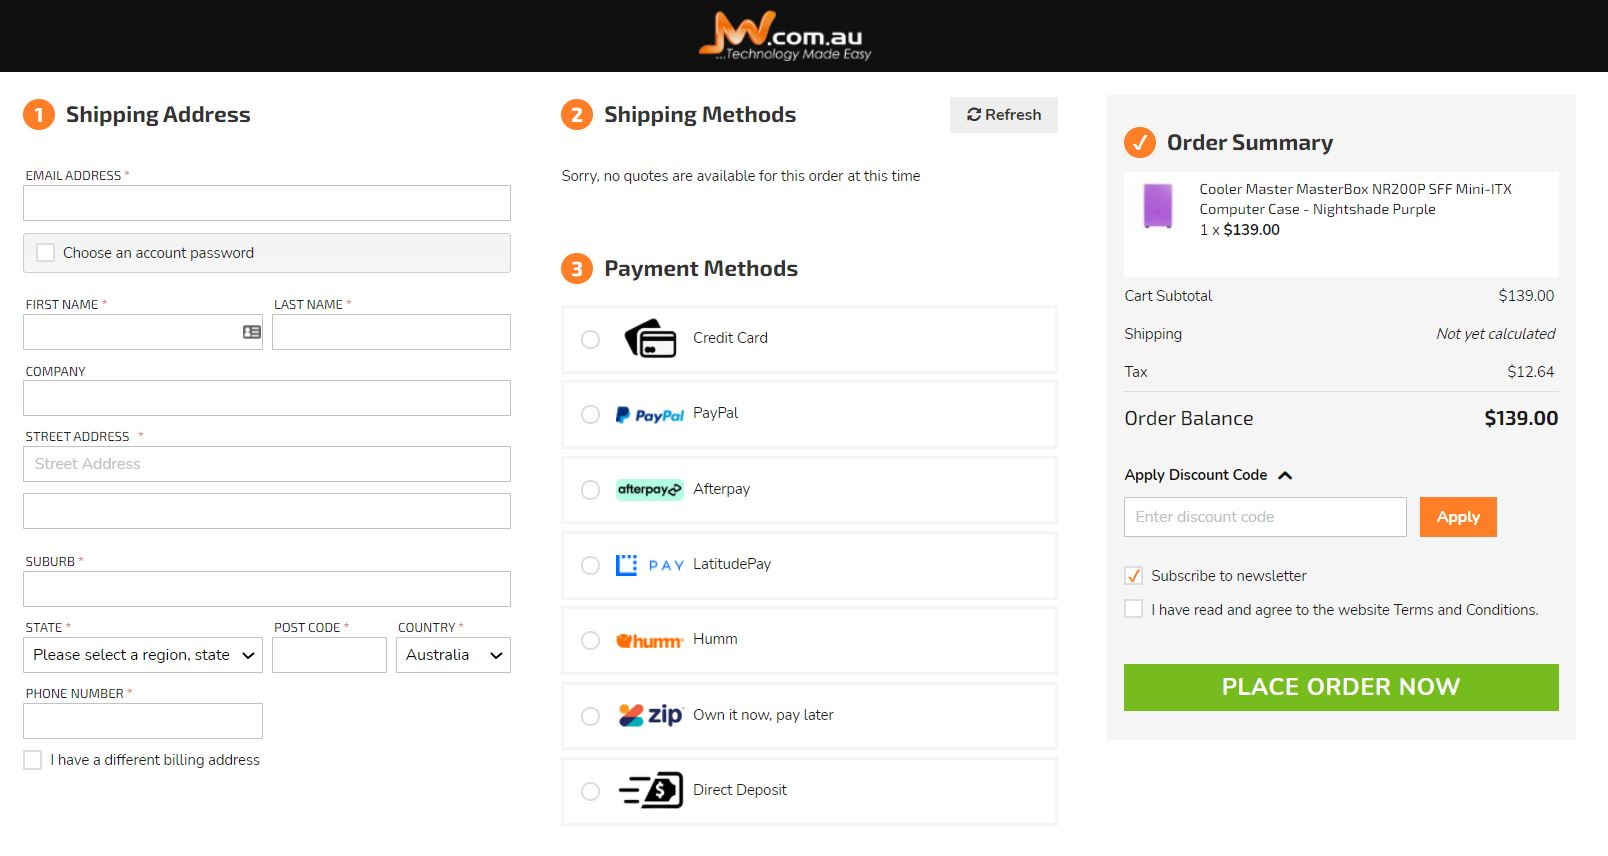 onestepcheckout magento 2 checkout buy now pay later Zip Afterpay PayPal